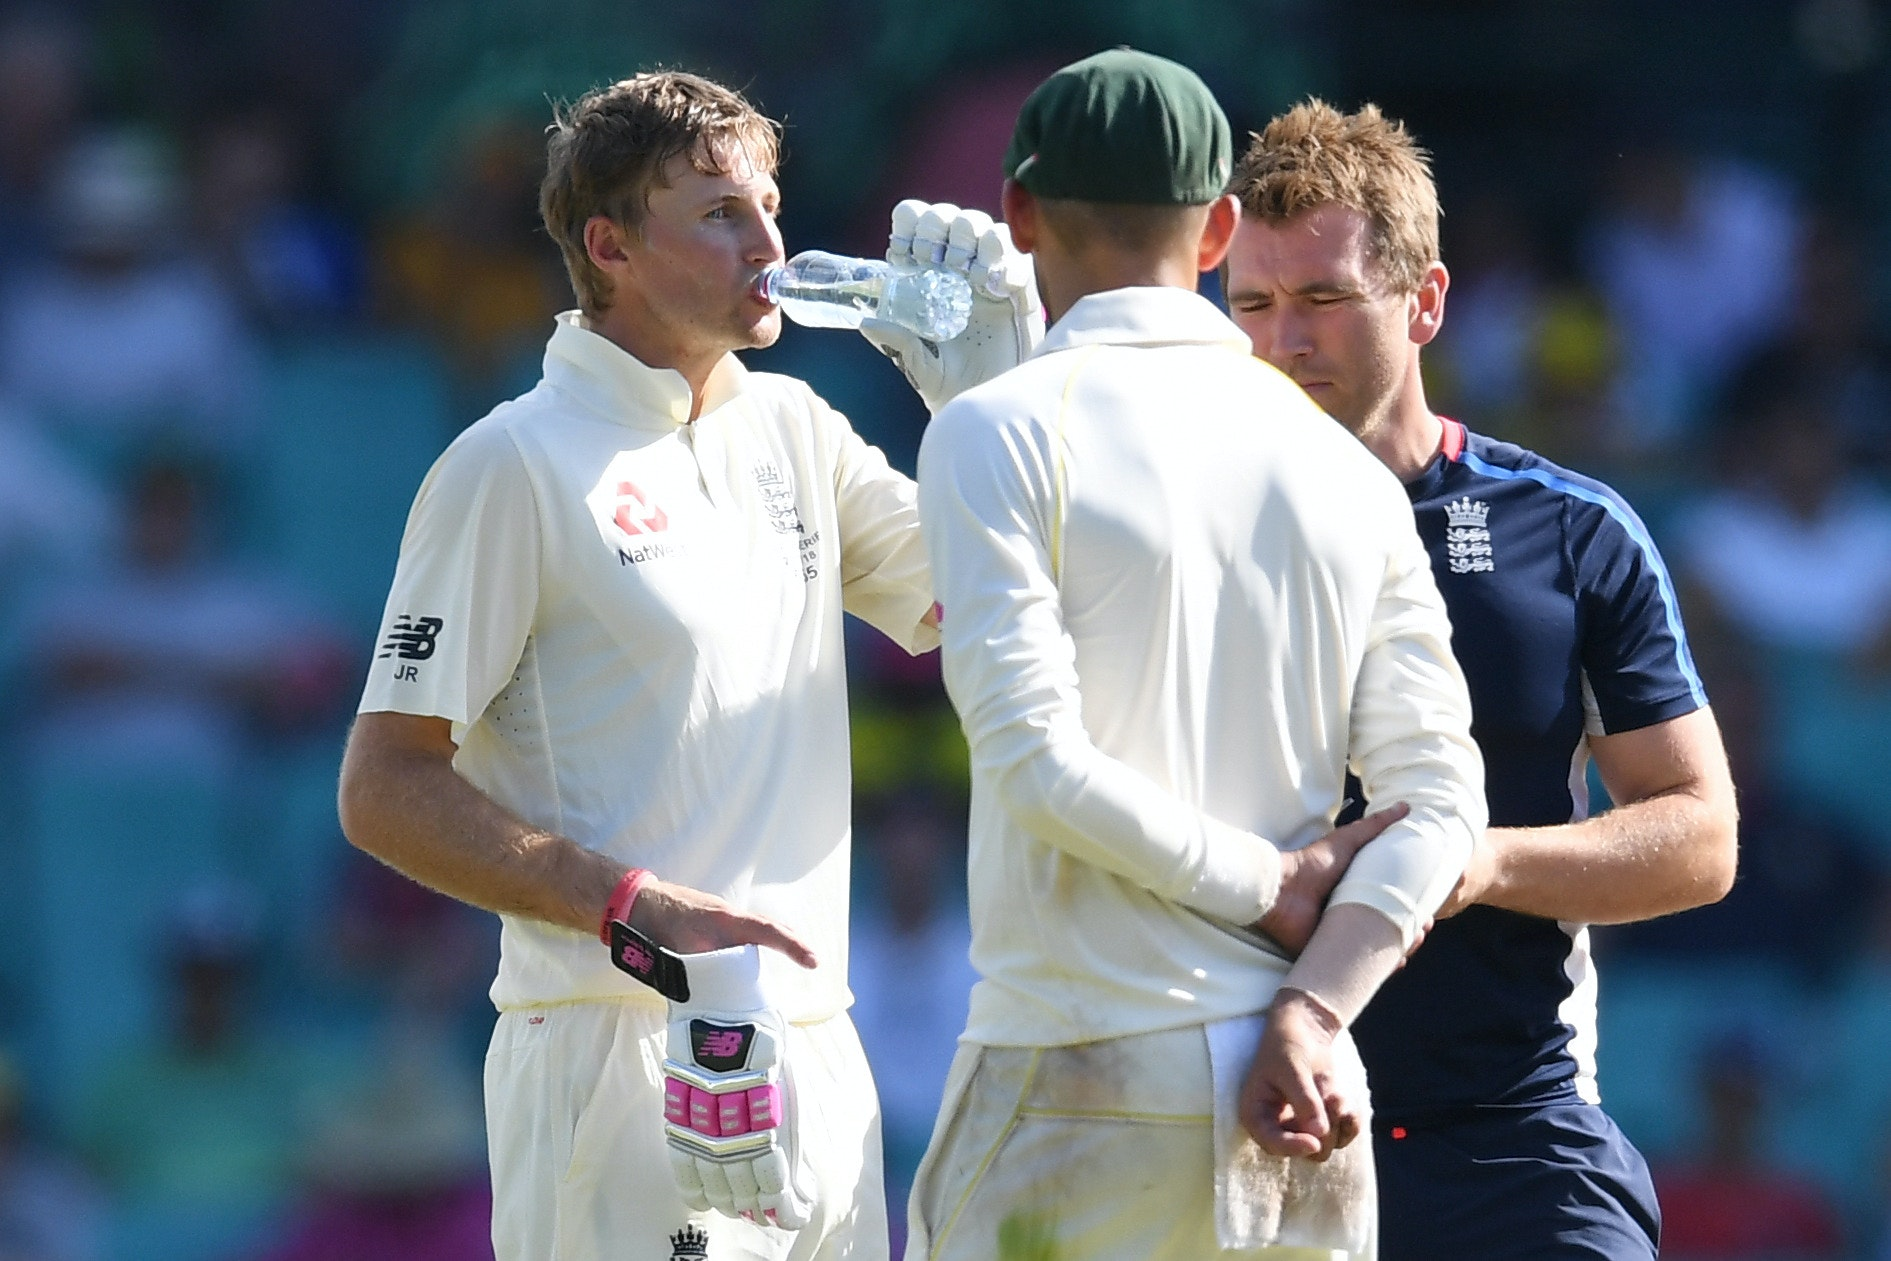 Extreme heat in sport: why using a fixed temperature cut-off isn't as simple as it seems